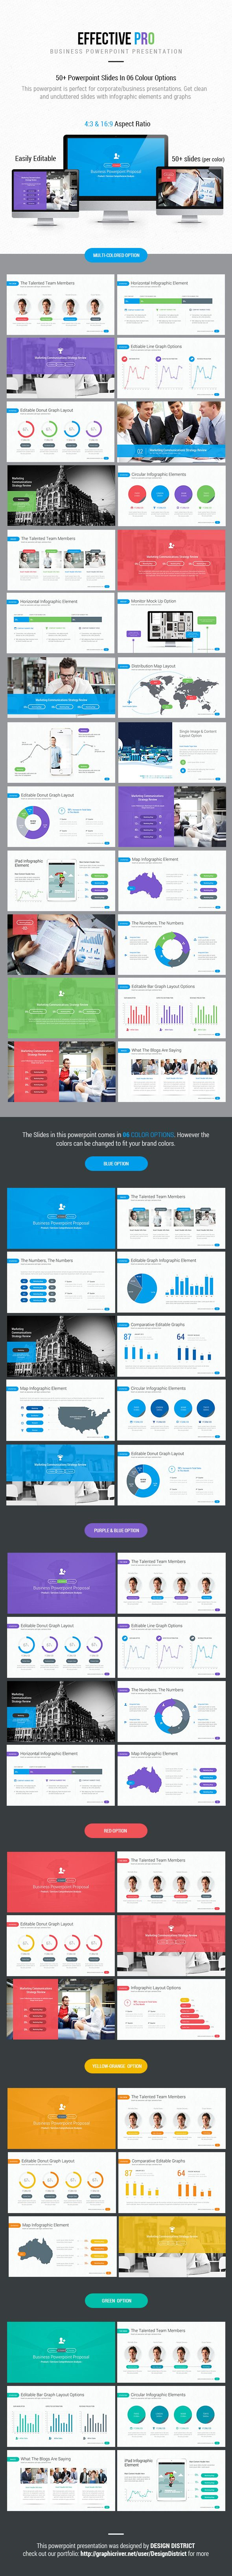 Powerpoint Presentation Template on Behance